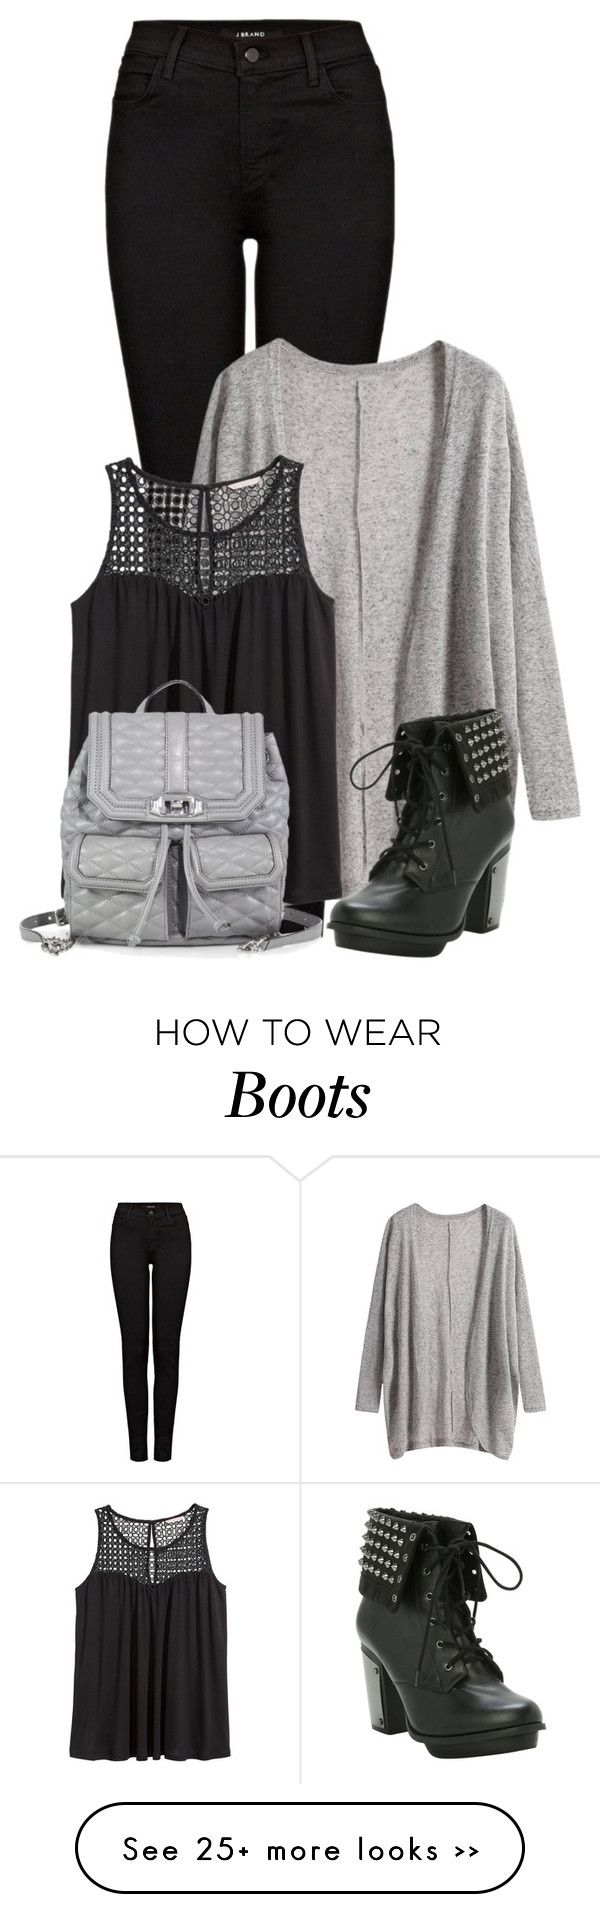 """""""Untitled #910"""" by directioner-123-ii on Polyvore"""